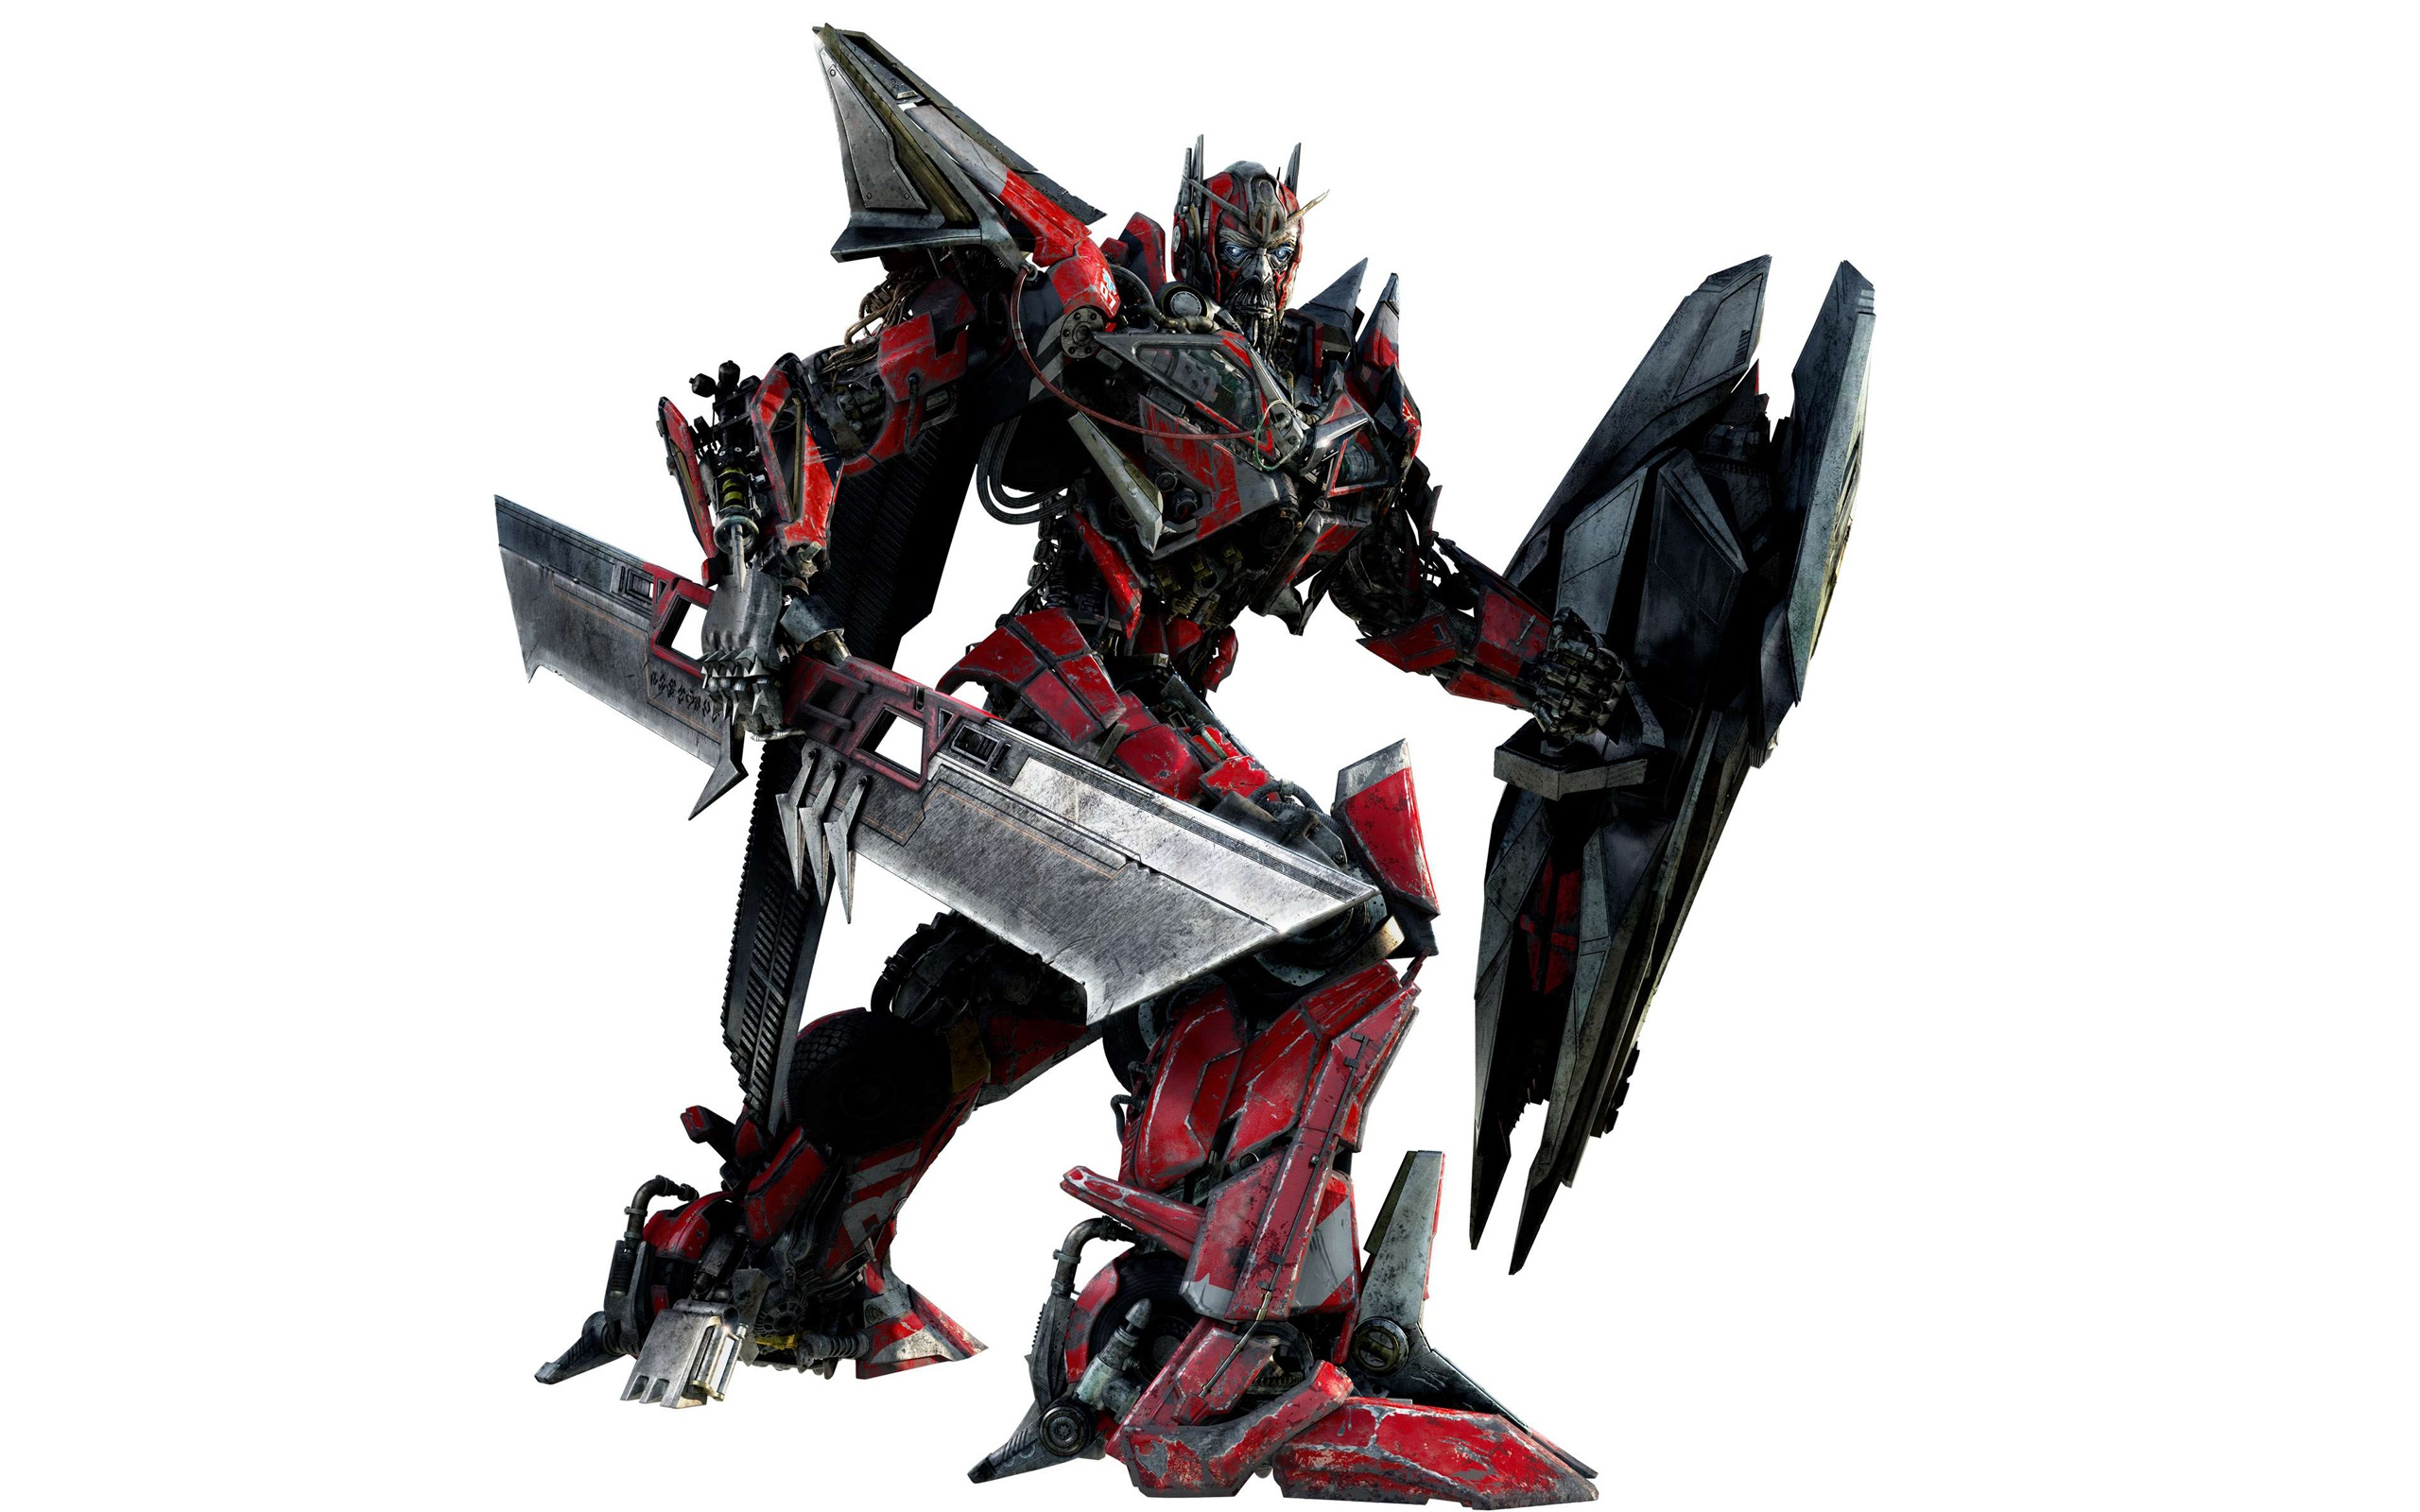 sentinel prime in transformers 3 wallpapers in jpg format for free